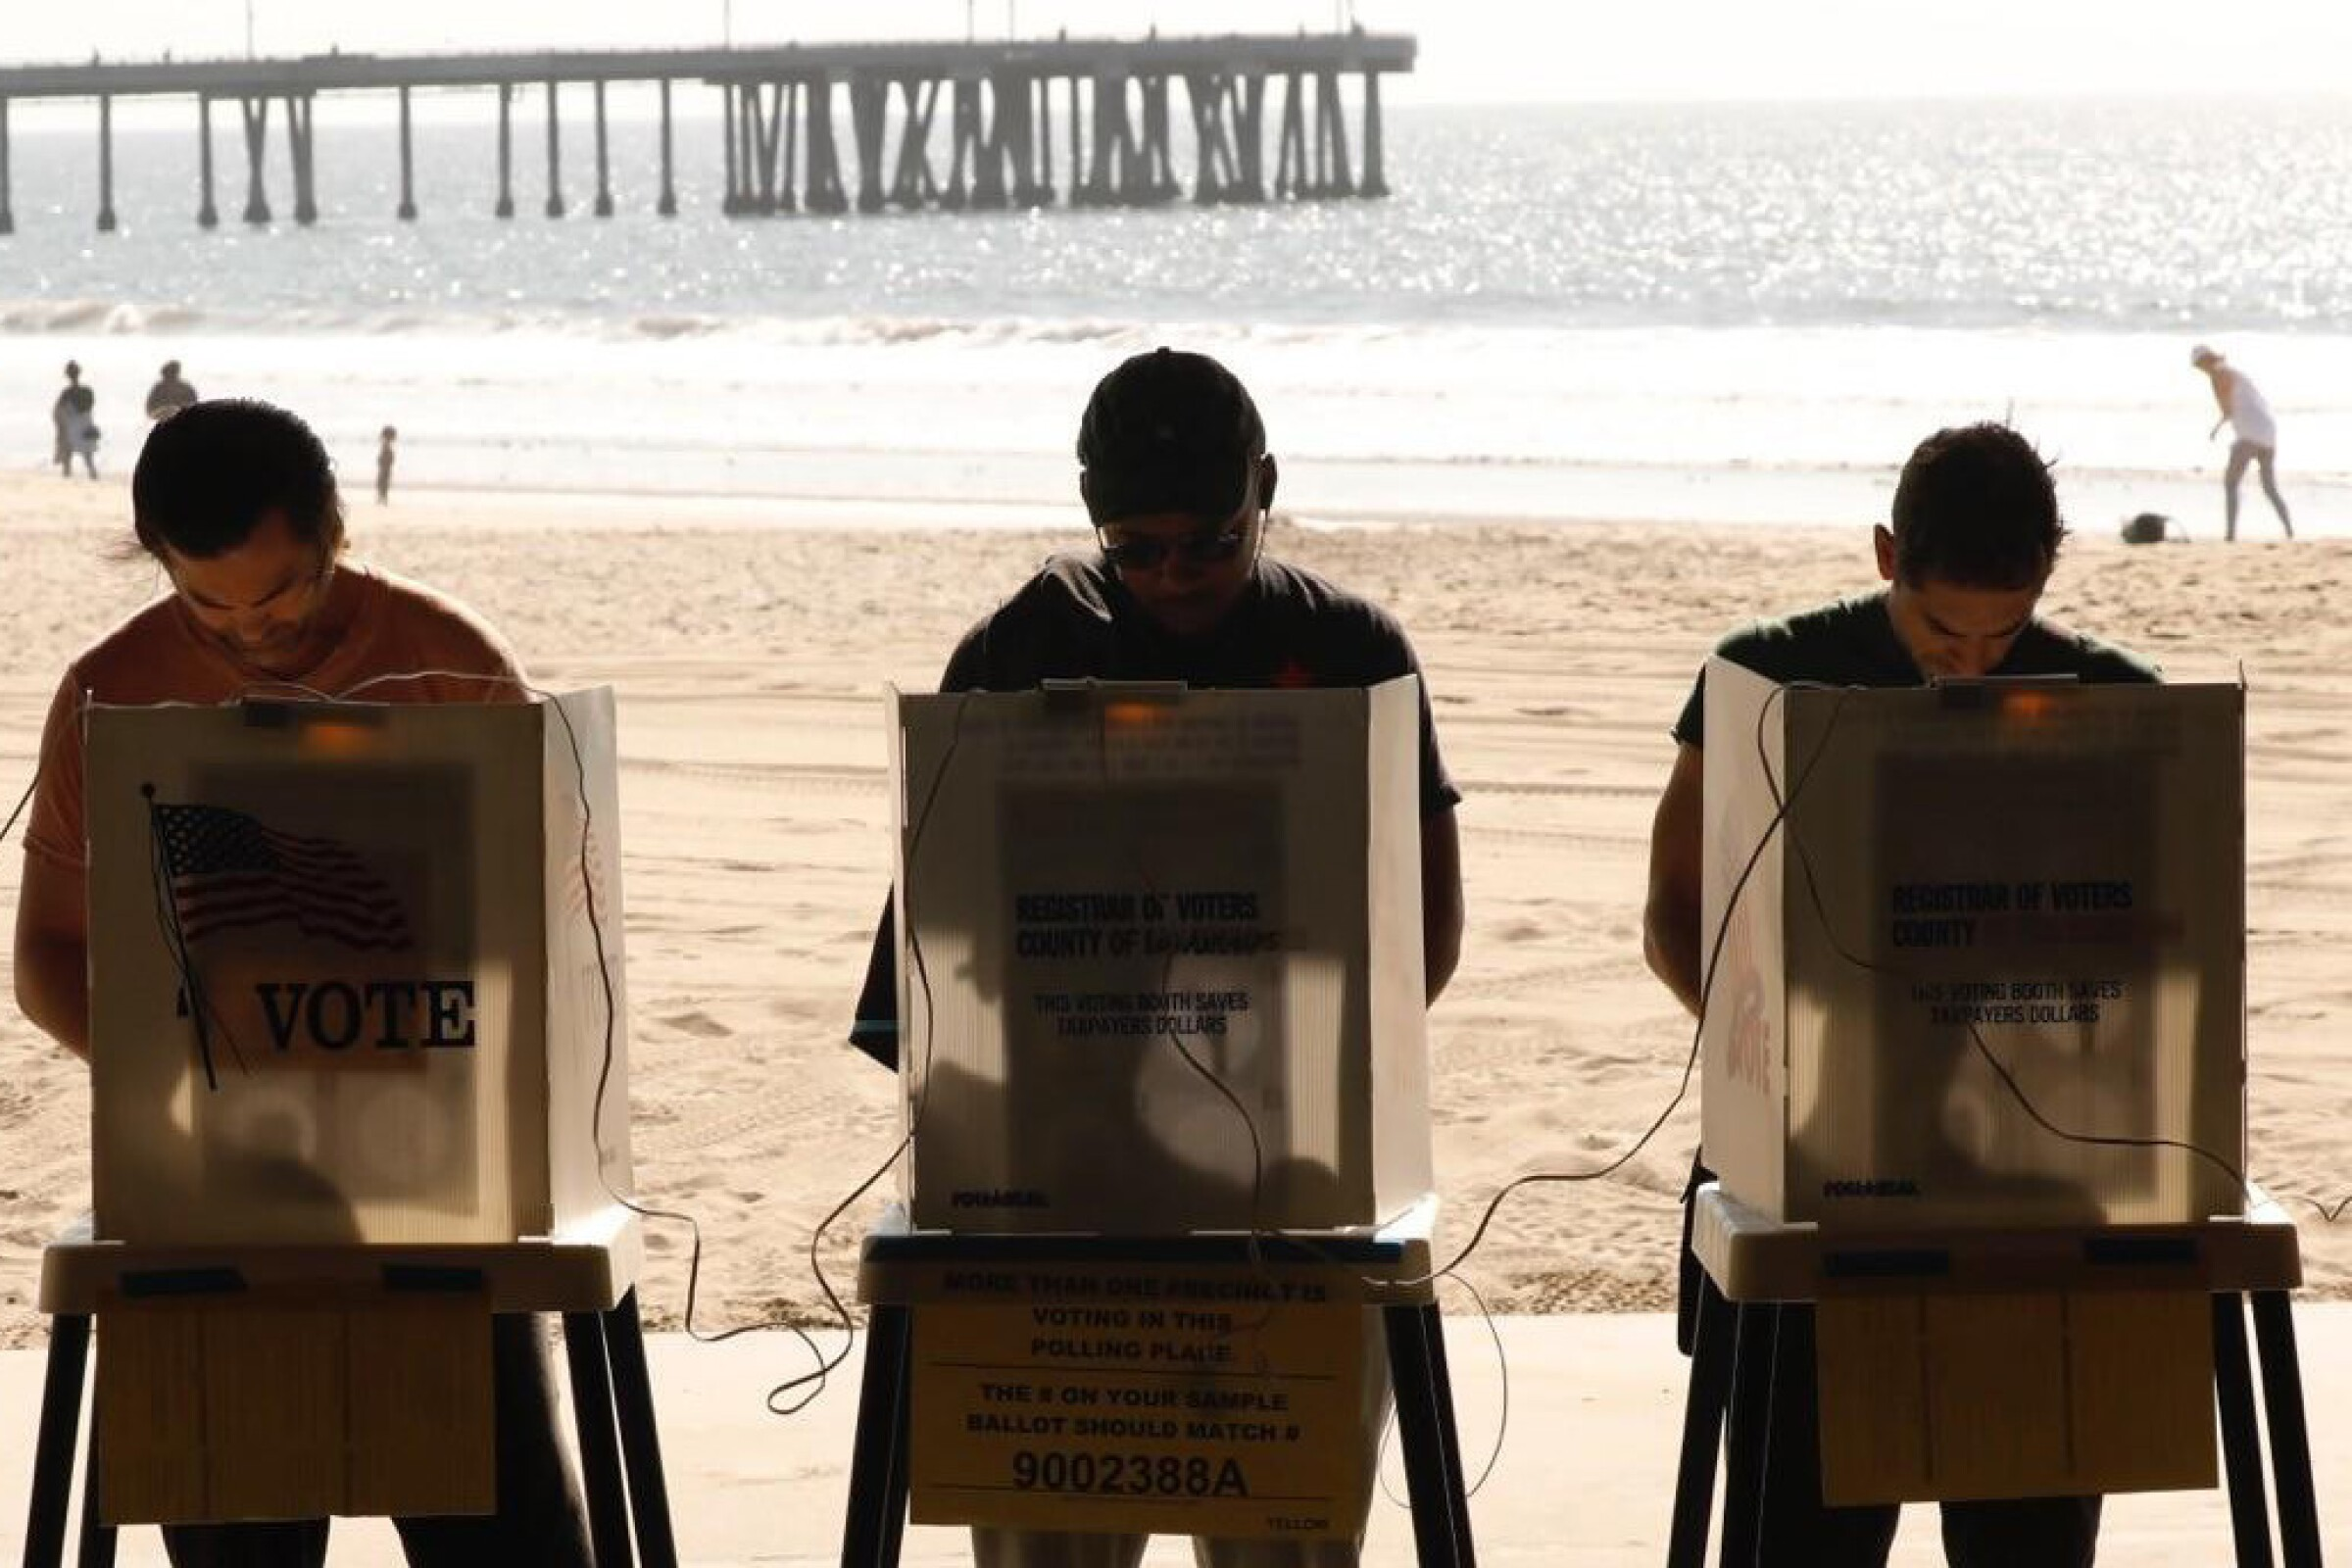 People vote on the beach